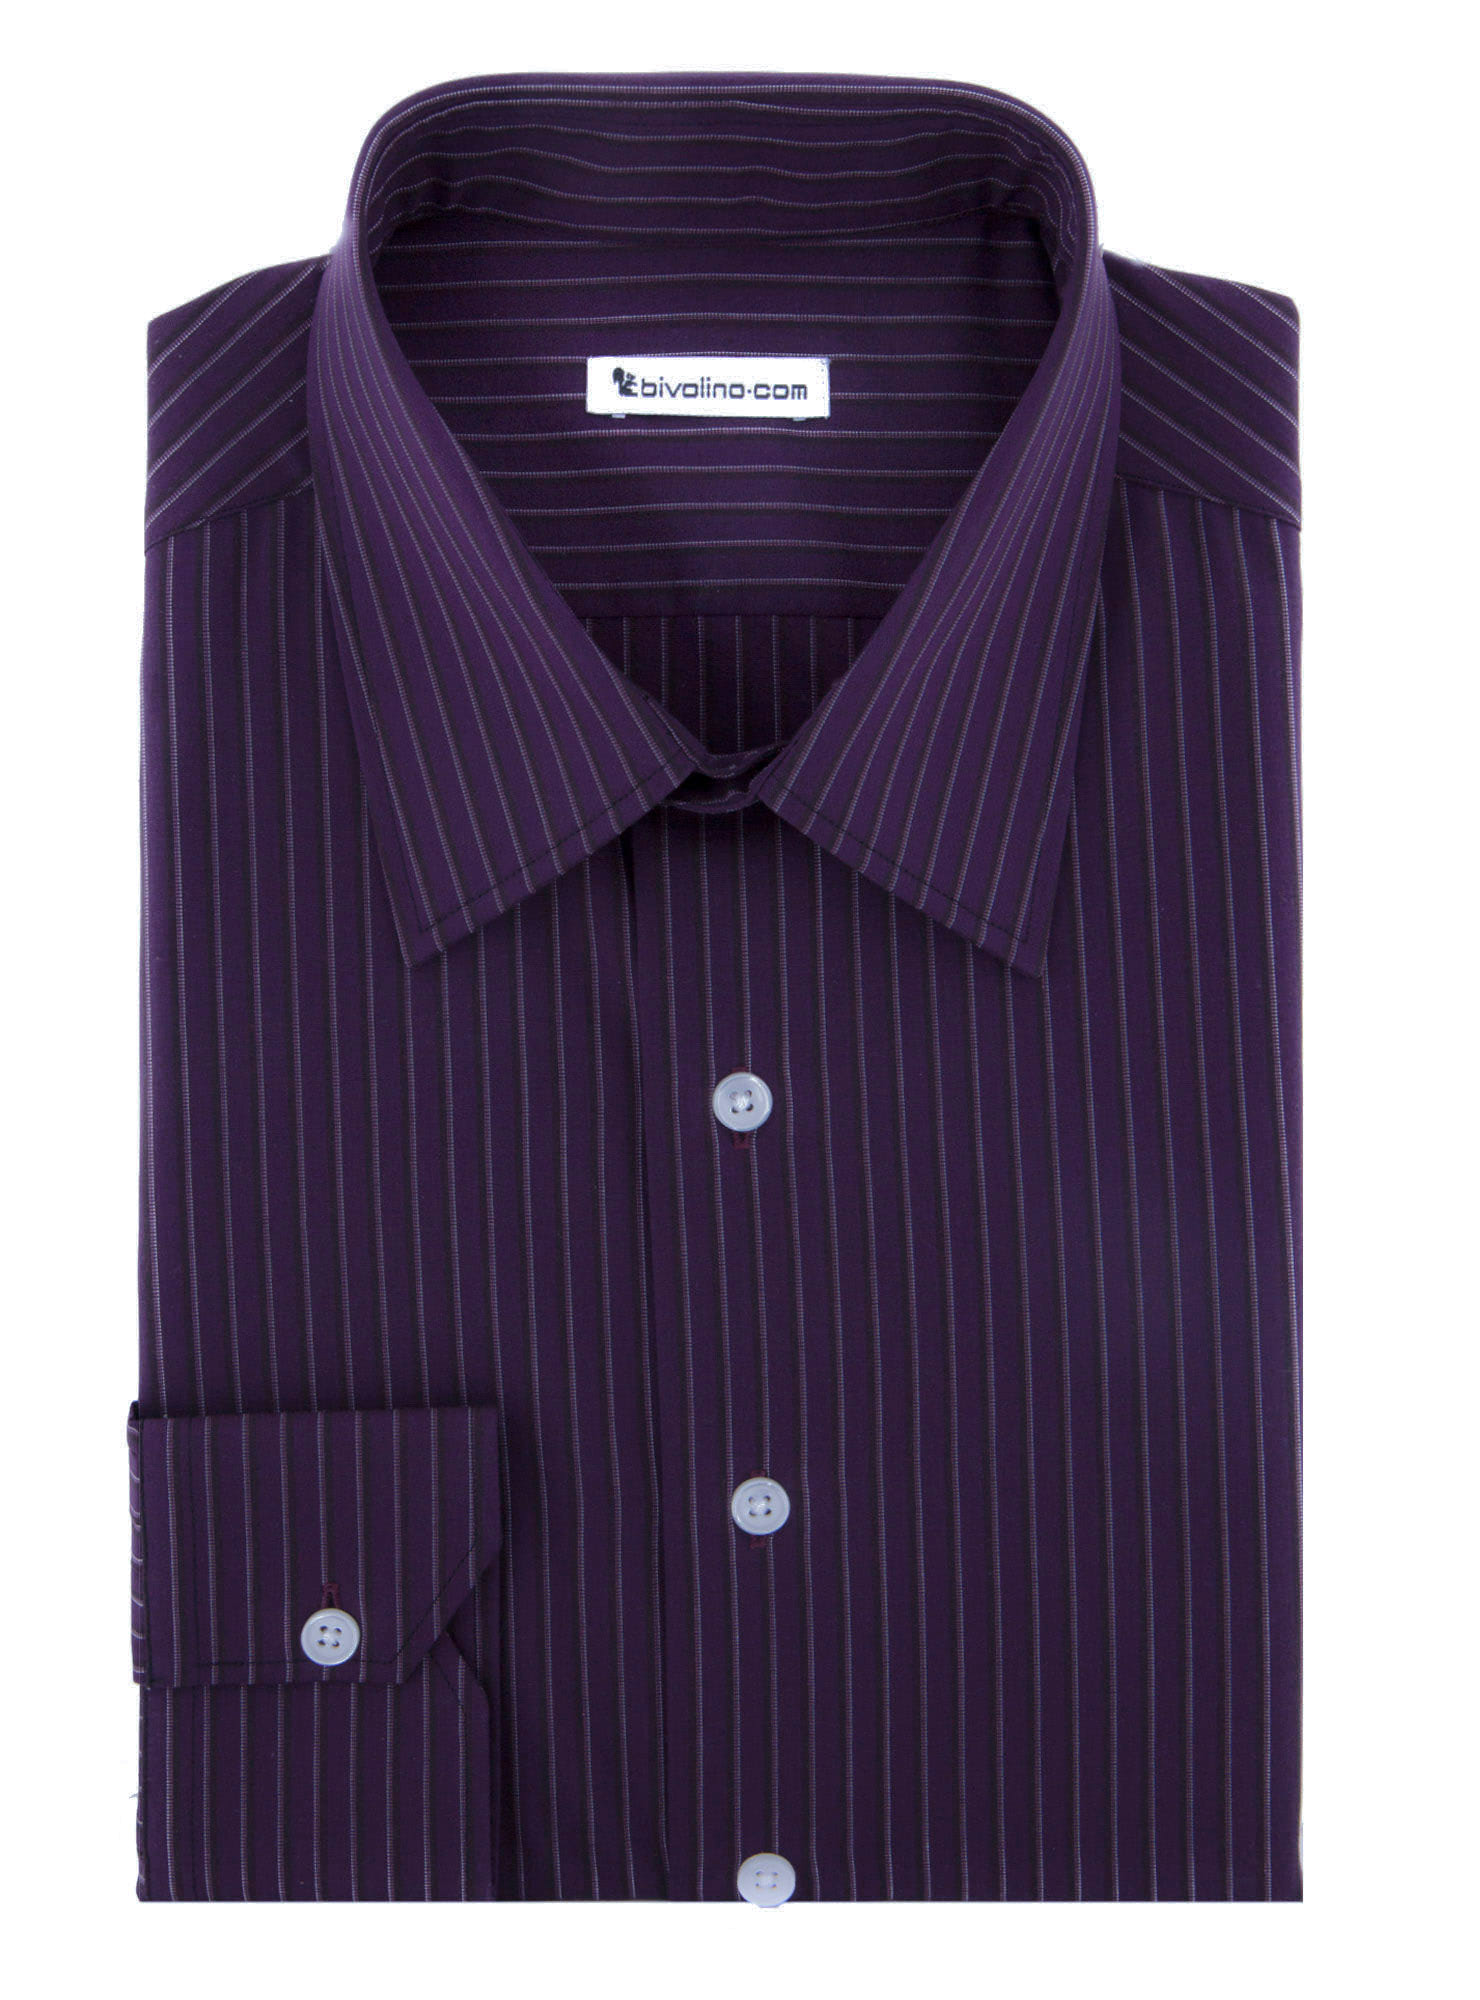 ROVIGO - Purple striped popeline shirt  - CIFRA 3